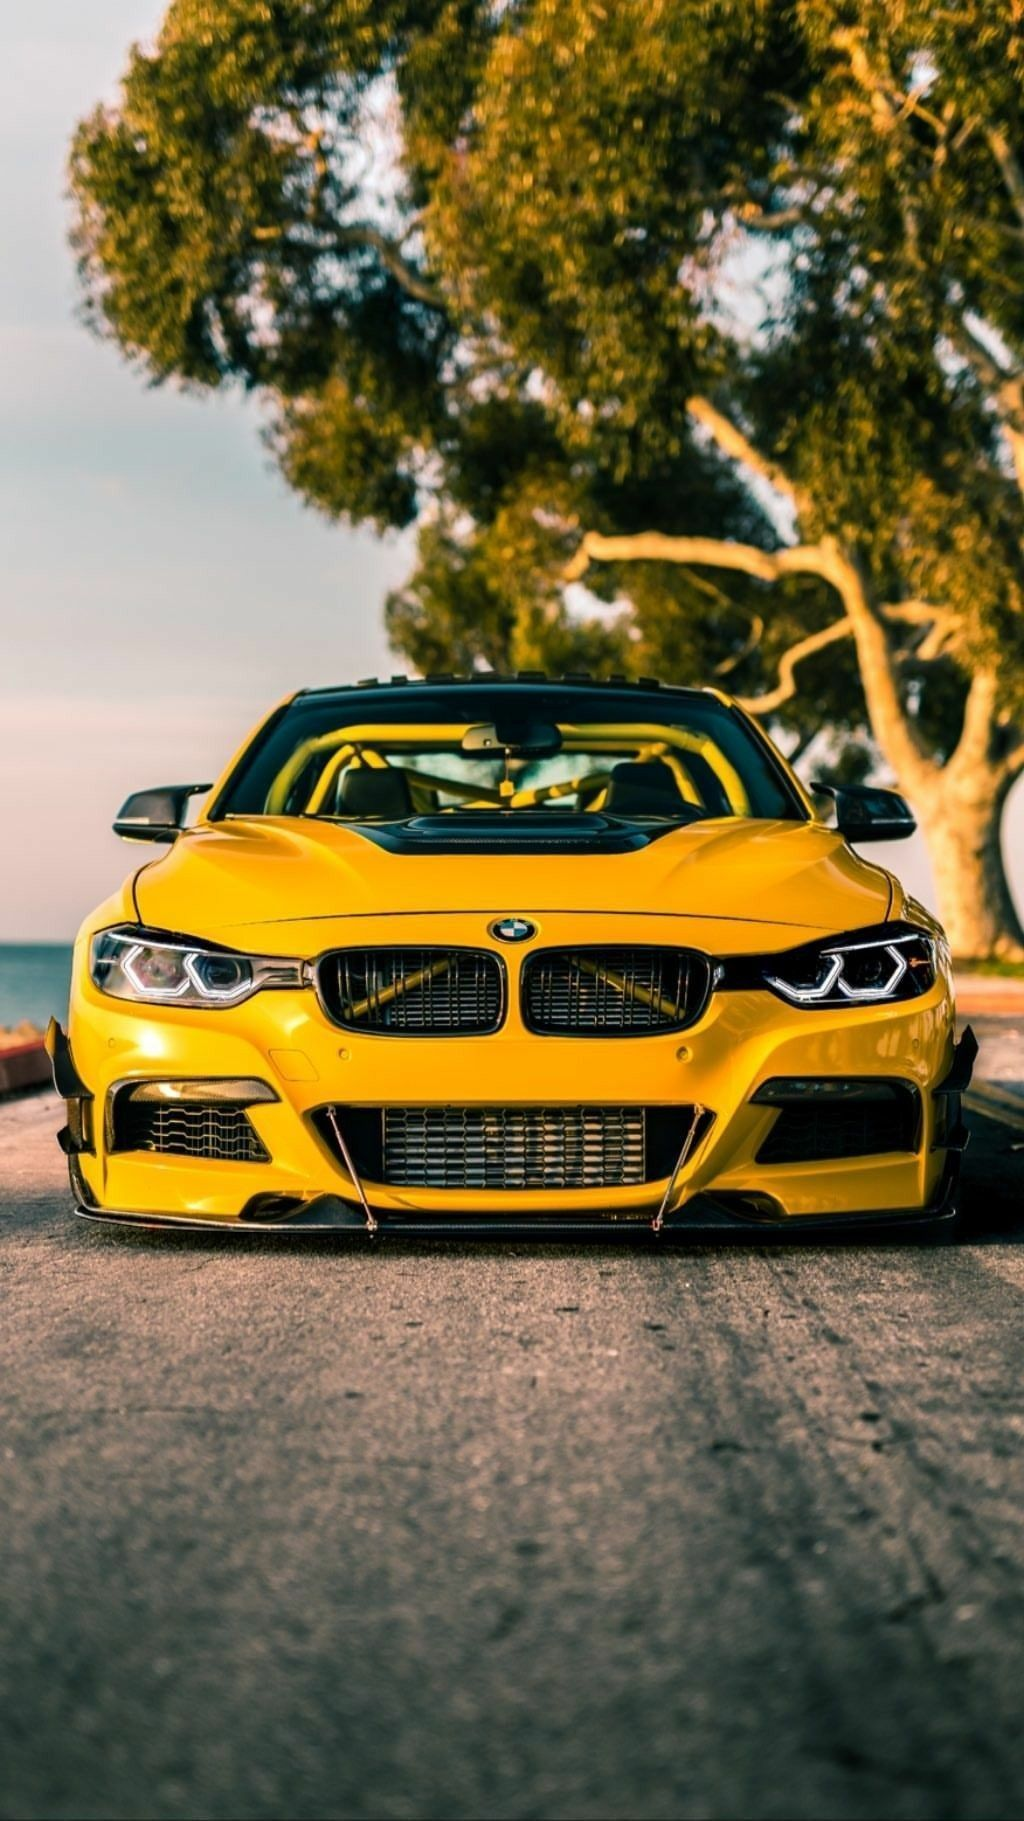 Bmw Yellow M3 Hd Wallpapers Thewallp Cars Wallpapers Bmw Cars Dream Cars Bmw Bmw